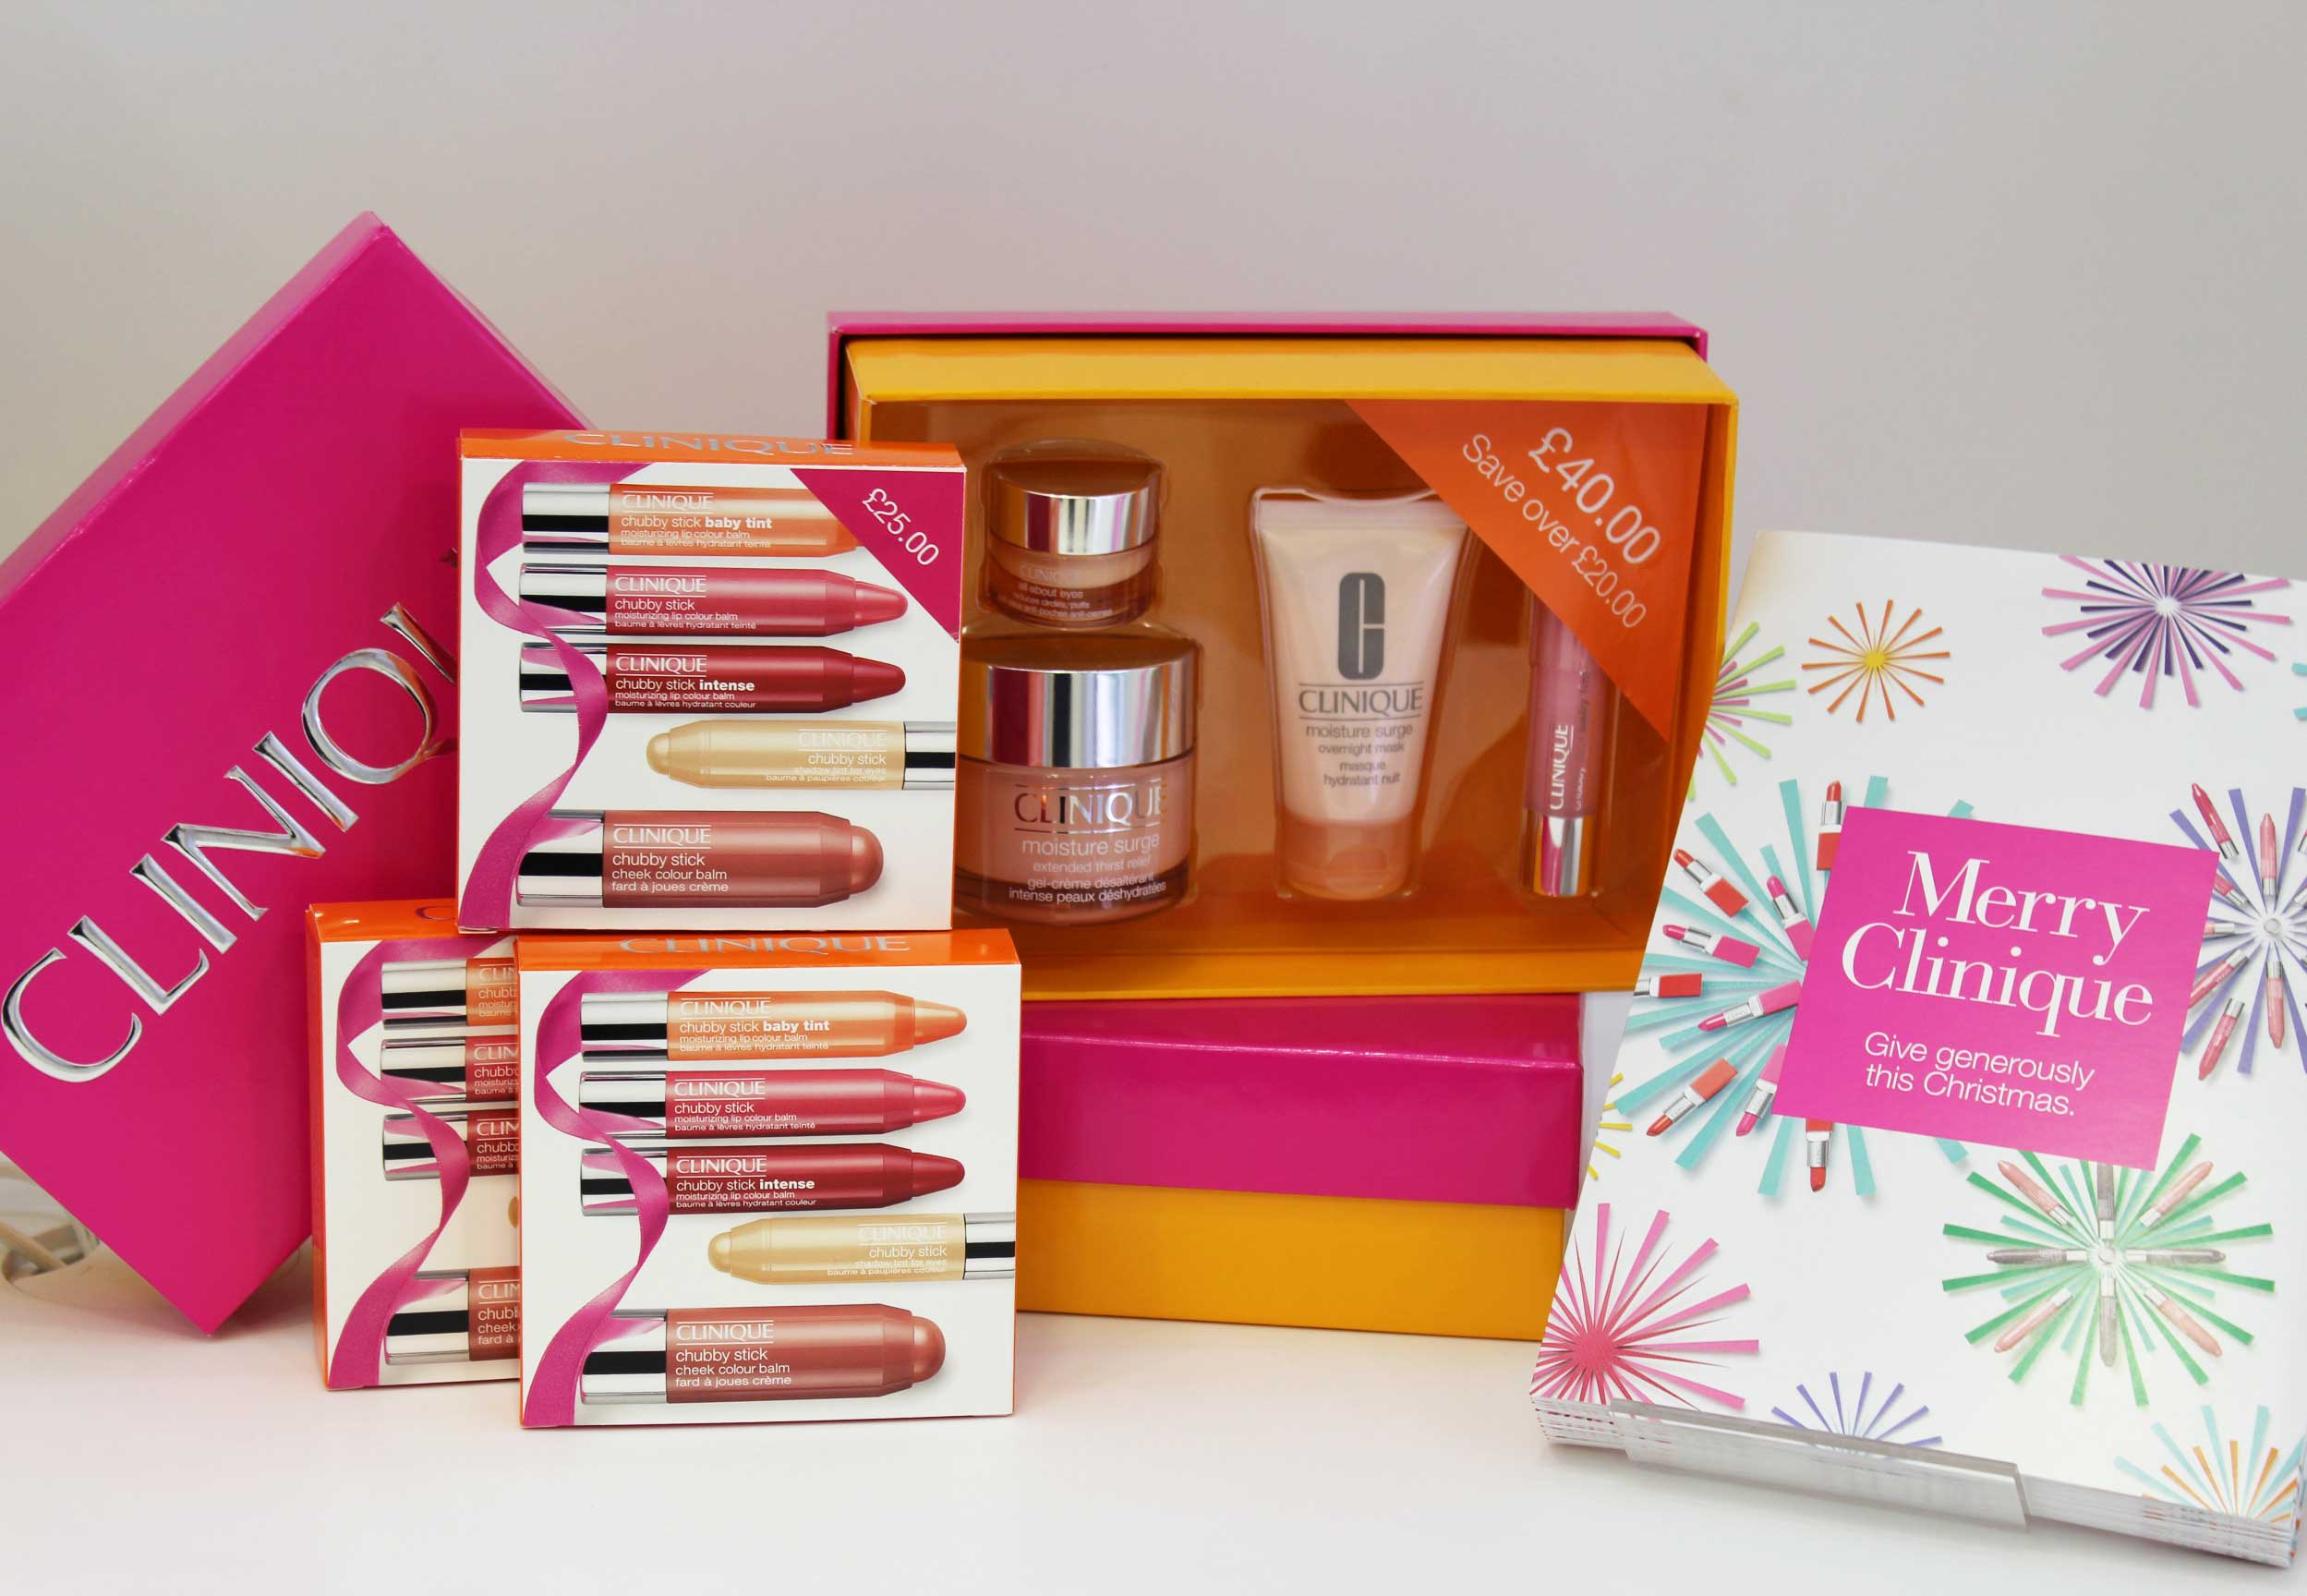 Clinique Beauty Gift Sets  sc 1 st  Jarrold & Gift Ideas for her: Clinique Gift Sets